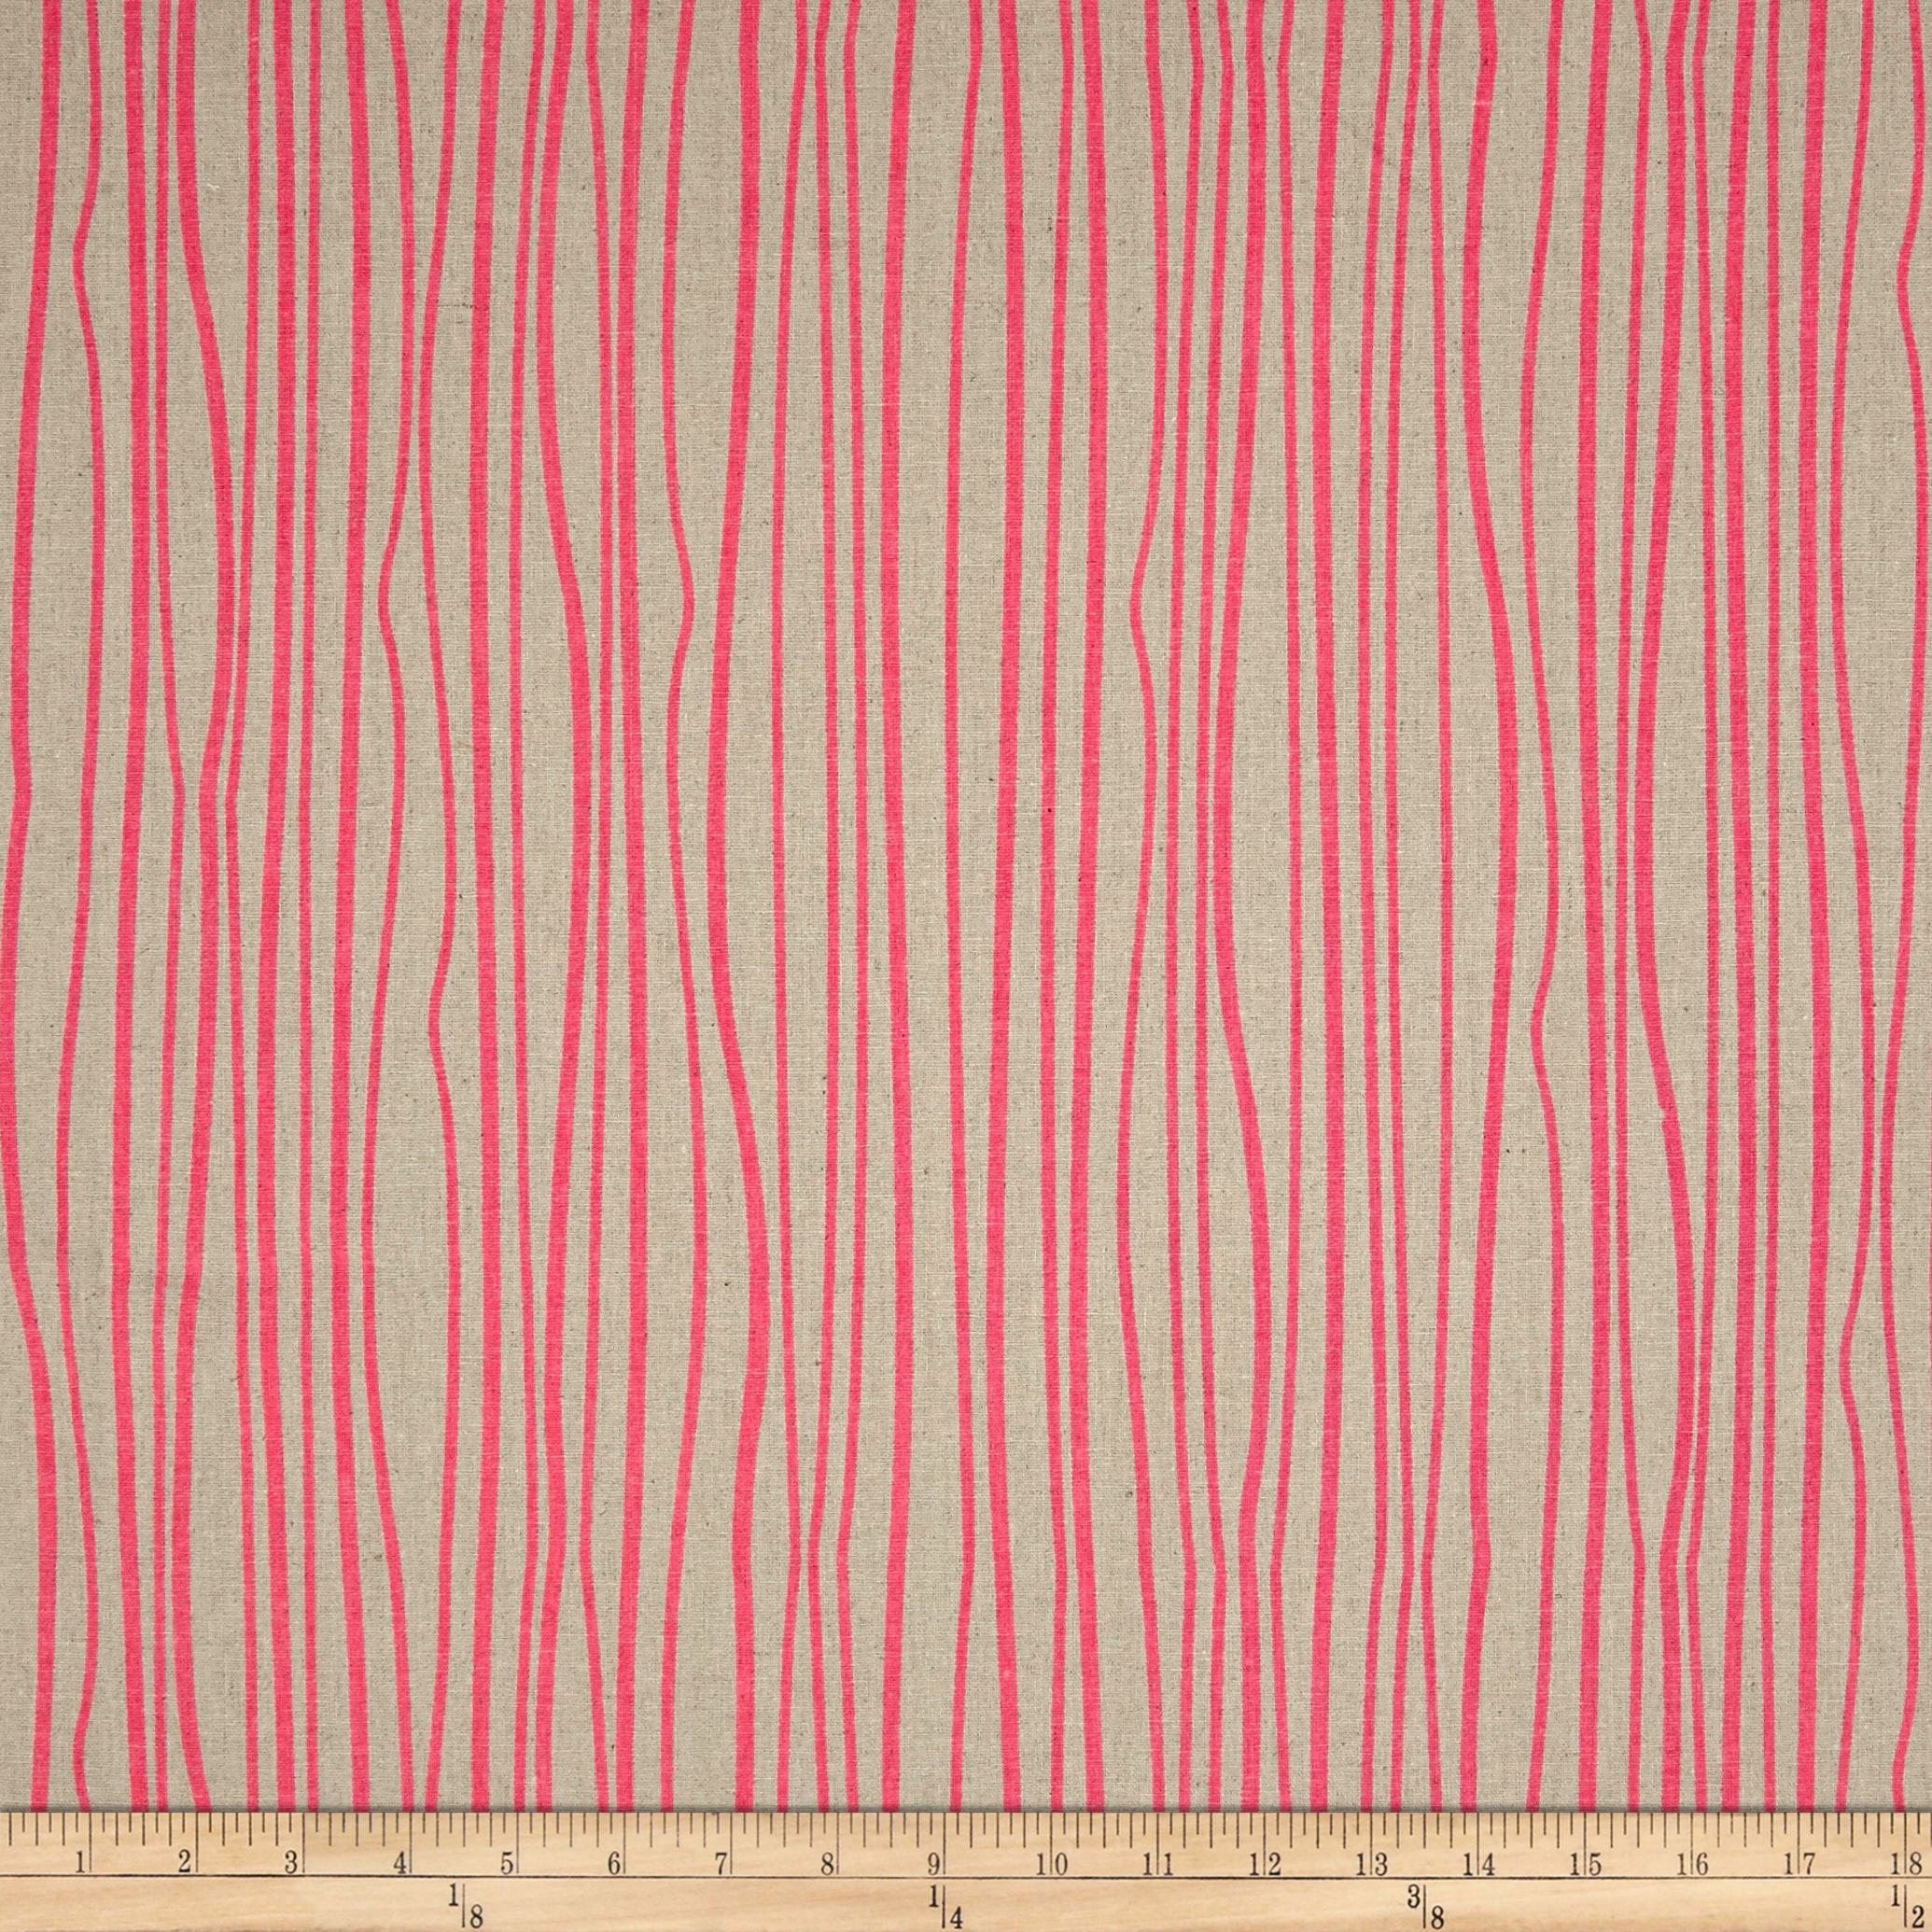 Image of Alison Glass Diving Board Seagrass Peony on Tailored Cloth Fabric